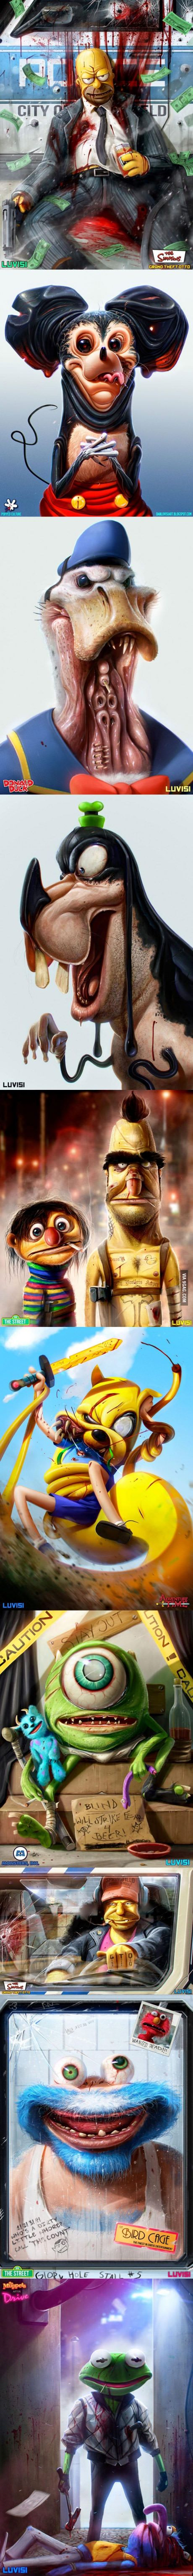 Childhood Characters as Criminals